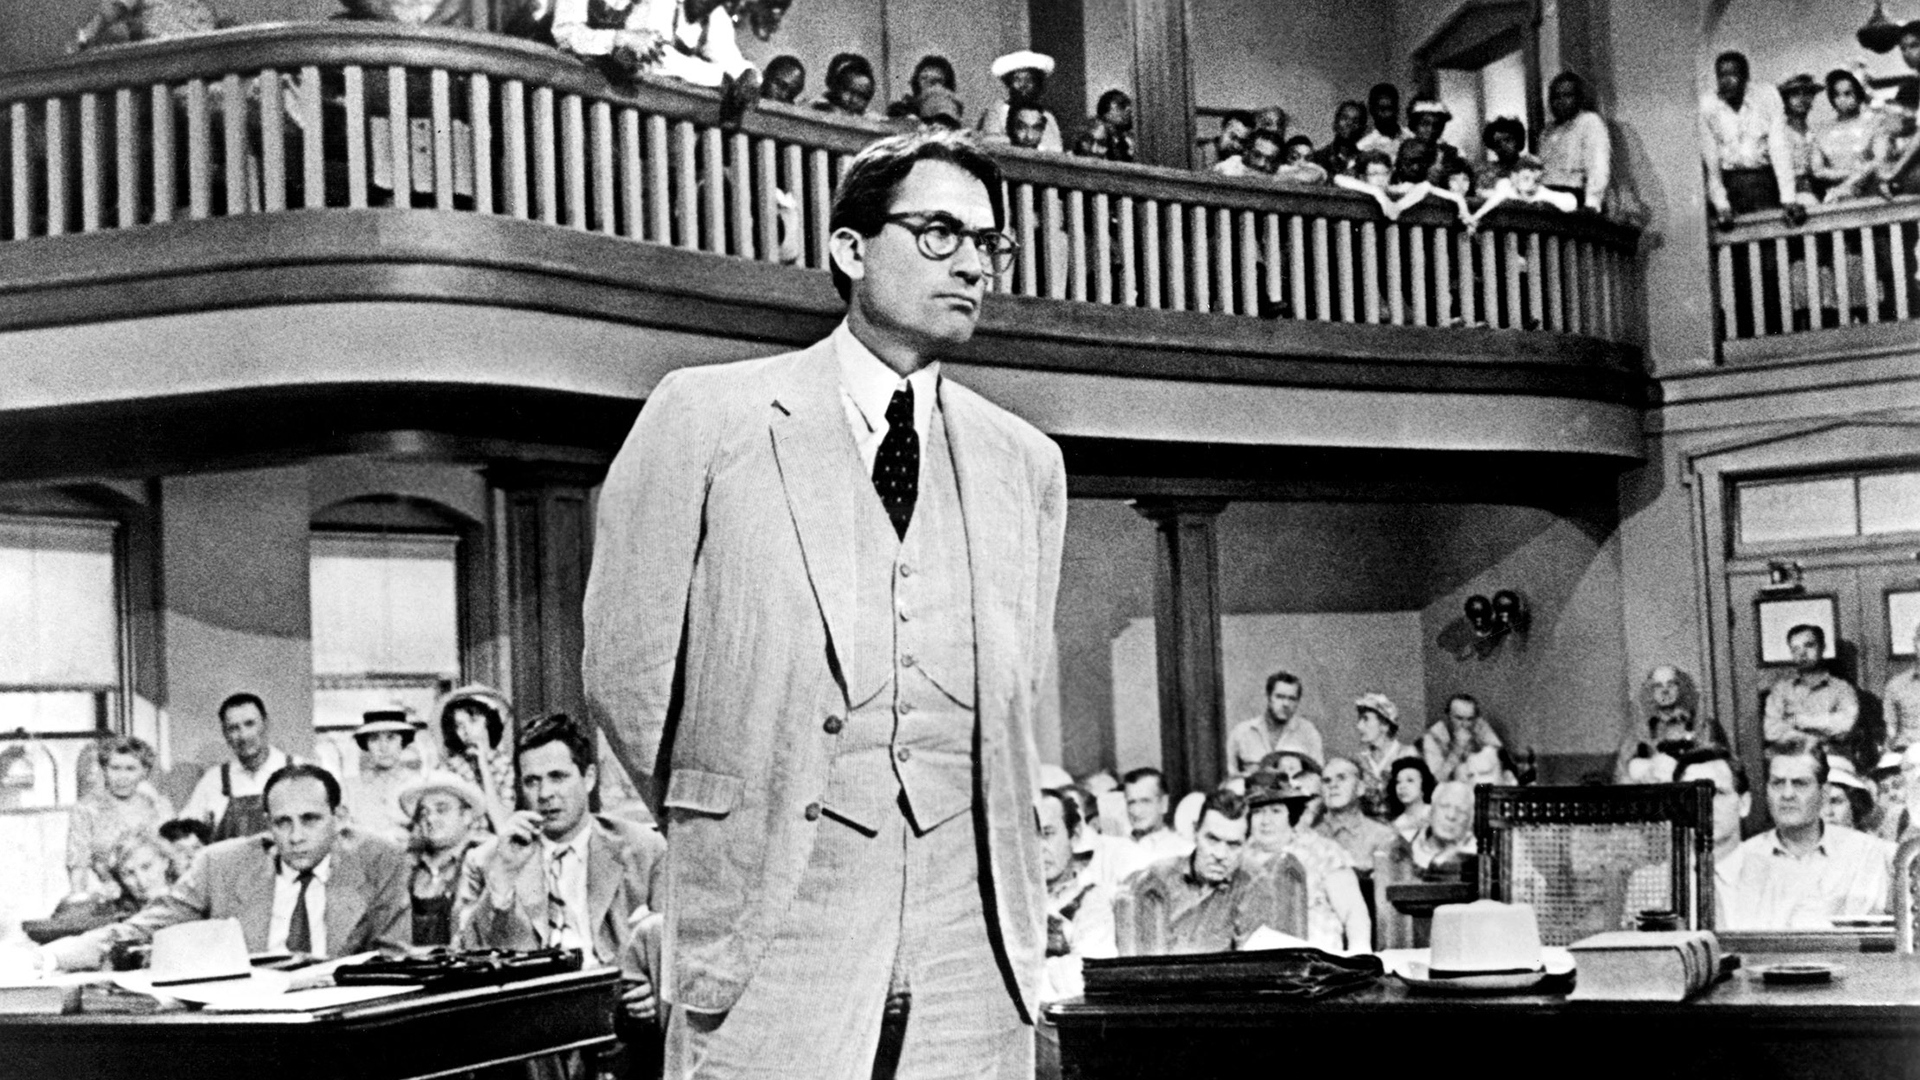 an analysis of parenting in to kill a mockingbird by harper lee Plot structure analysis to kill a mockingbird is divided into 2 parts the first part extends from chapter 1 to chapter 11, and the second part from chapter 12 to chapter 31.